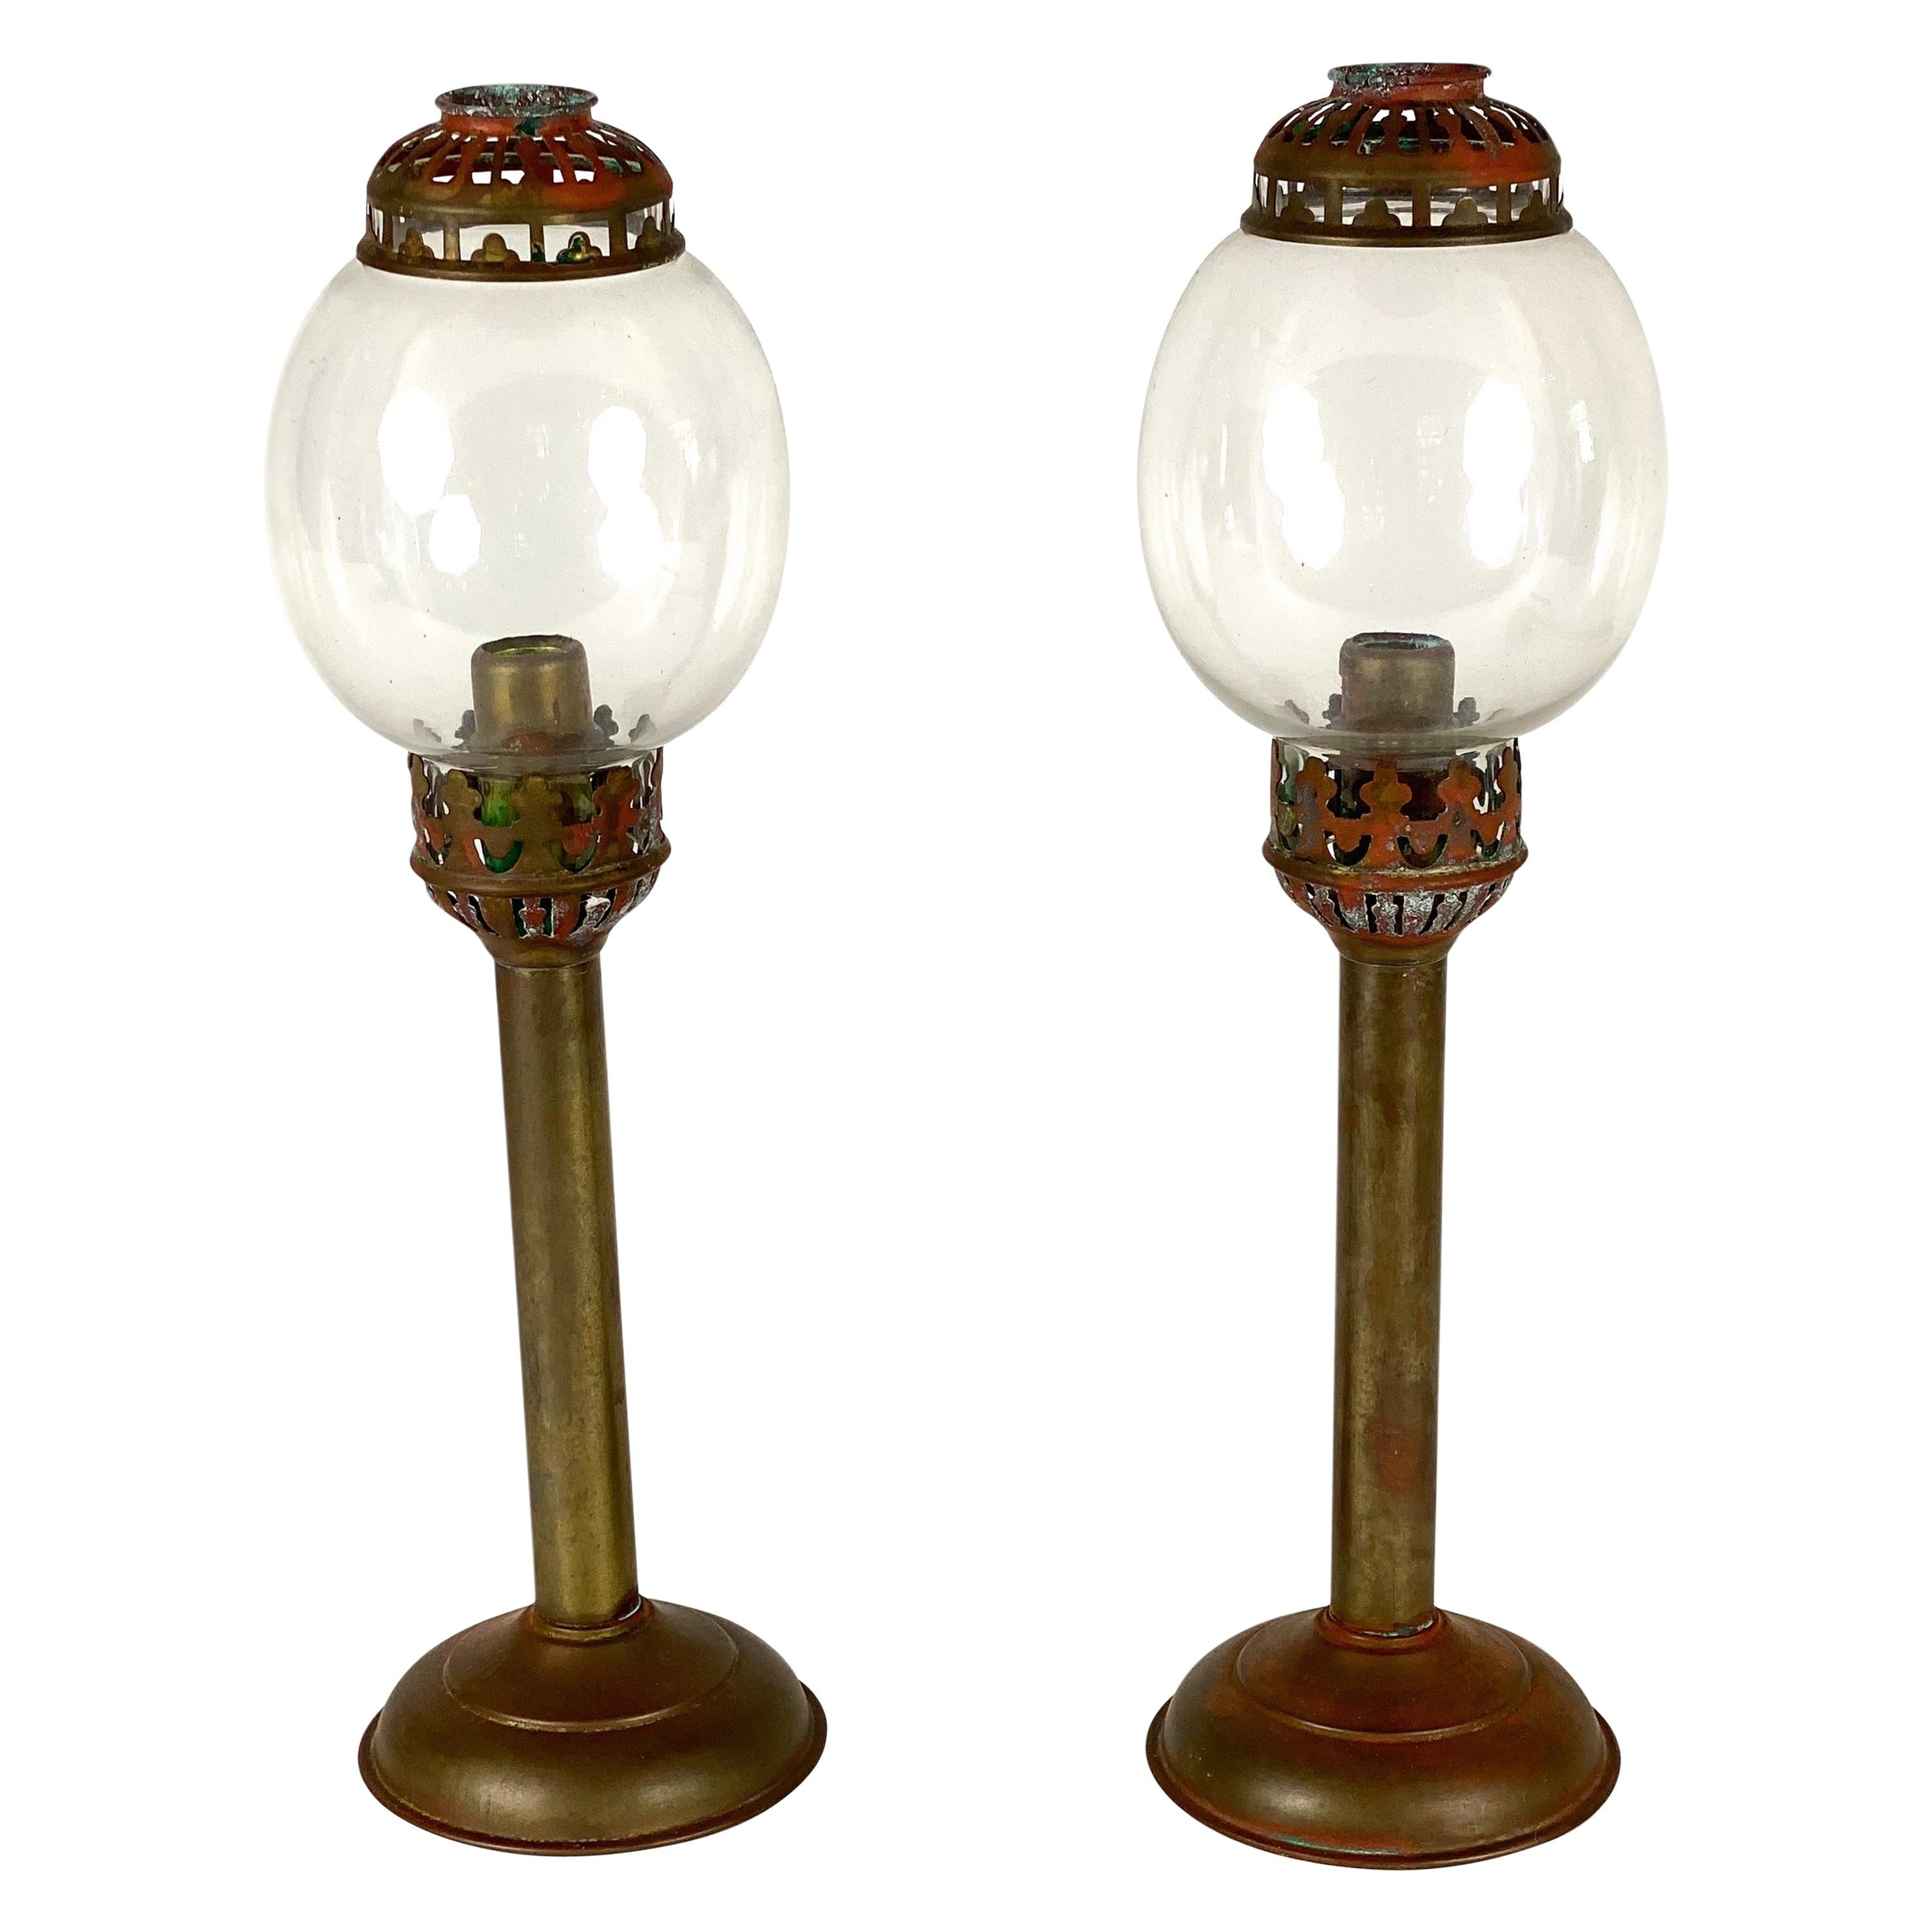 Antique Candle Stick Holders